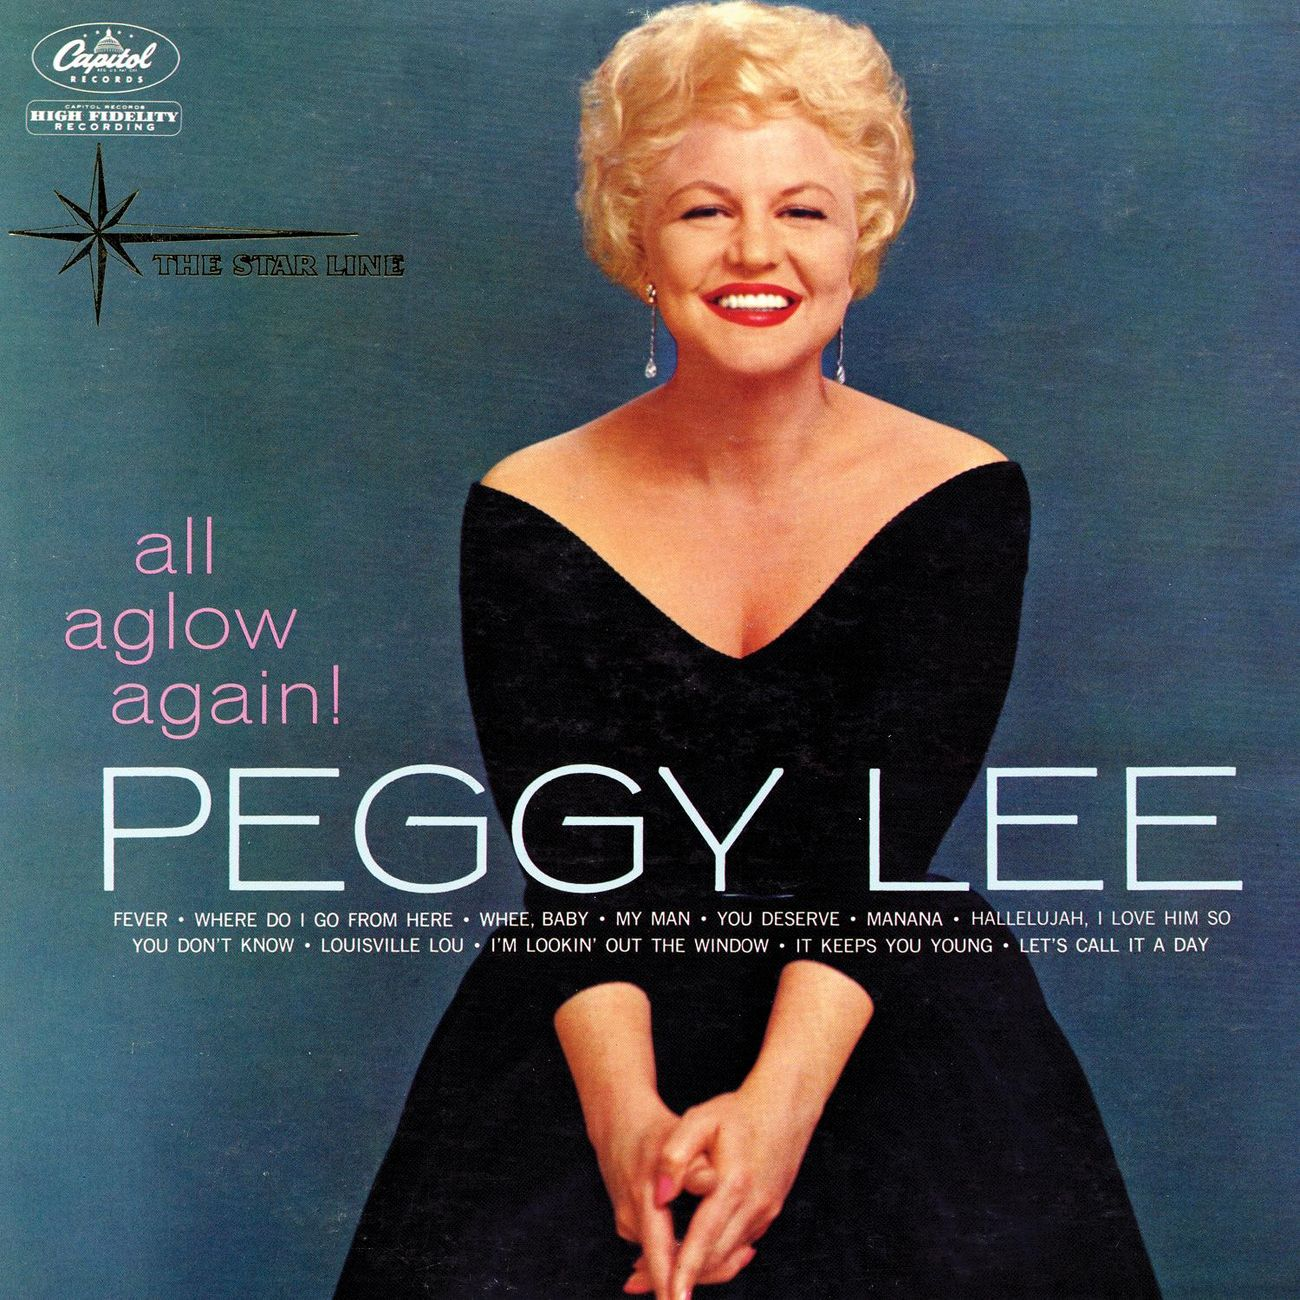 PEGGY LEE (VOCALS) - All Aglow Again! cover